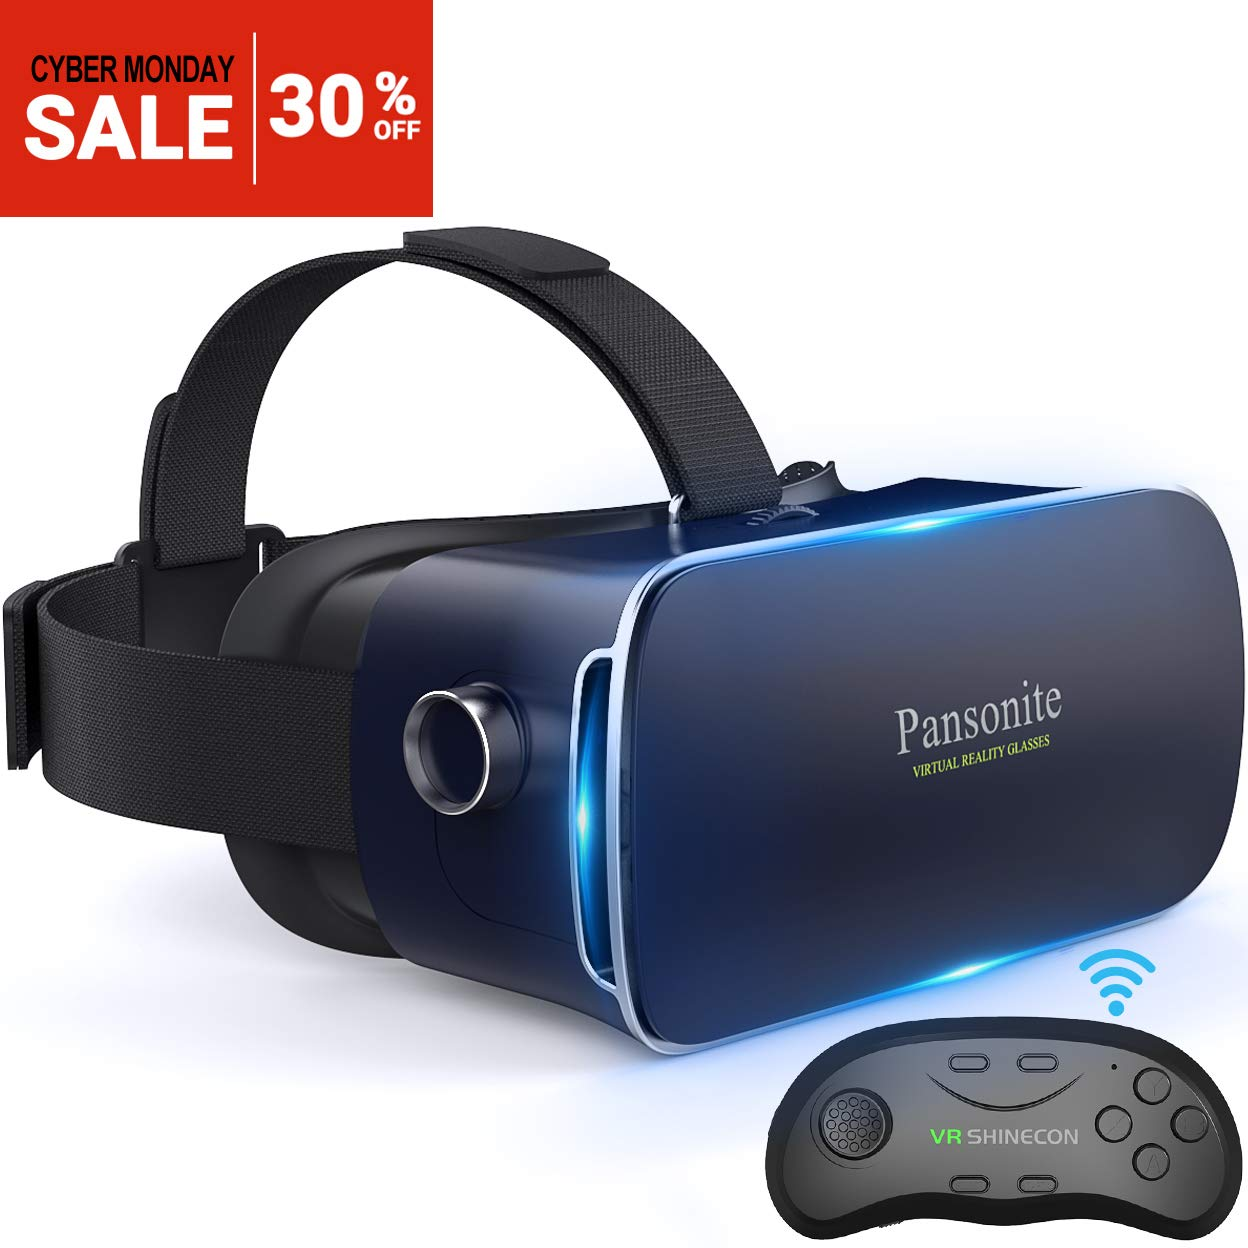 Pansonite 3D VR Glasses Virtual Reality Headset for Games & 3D Movies, Lightweight with Adjustable Pupil and Object Distance for iOS and Android Smartphone (Dark Blue with Controller) 6097771030576